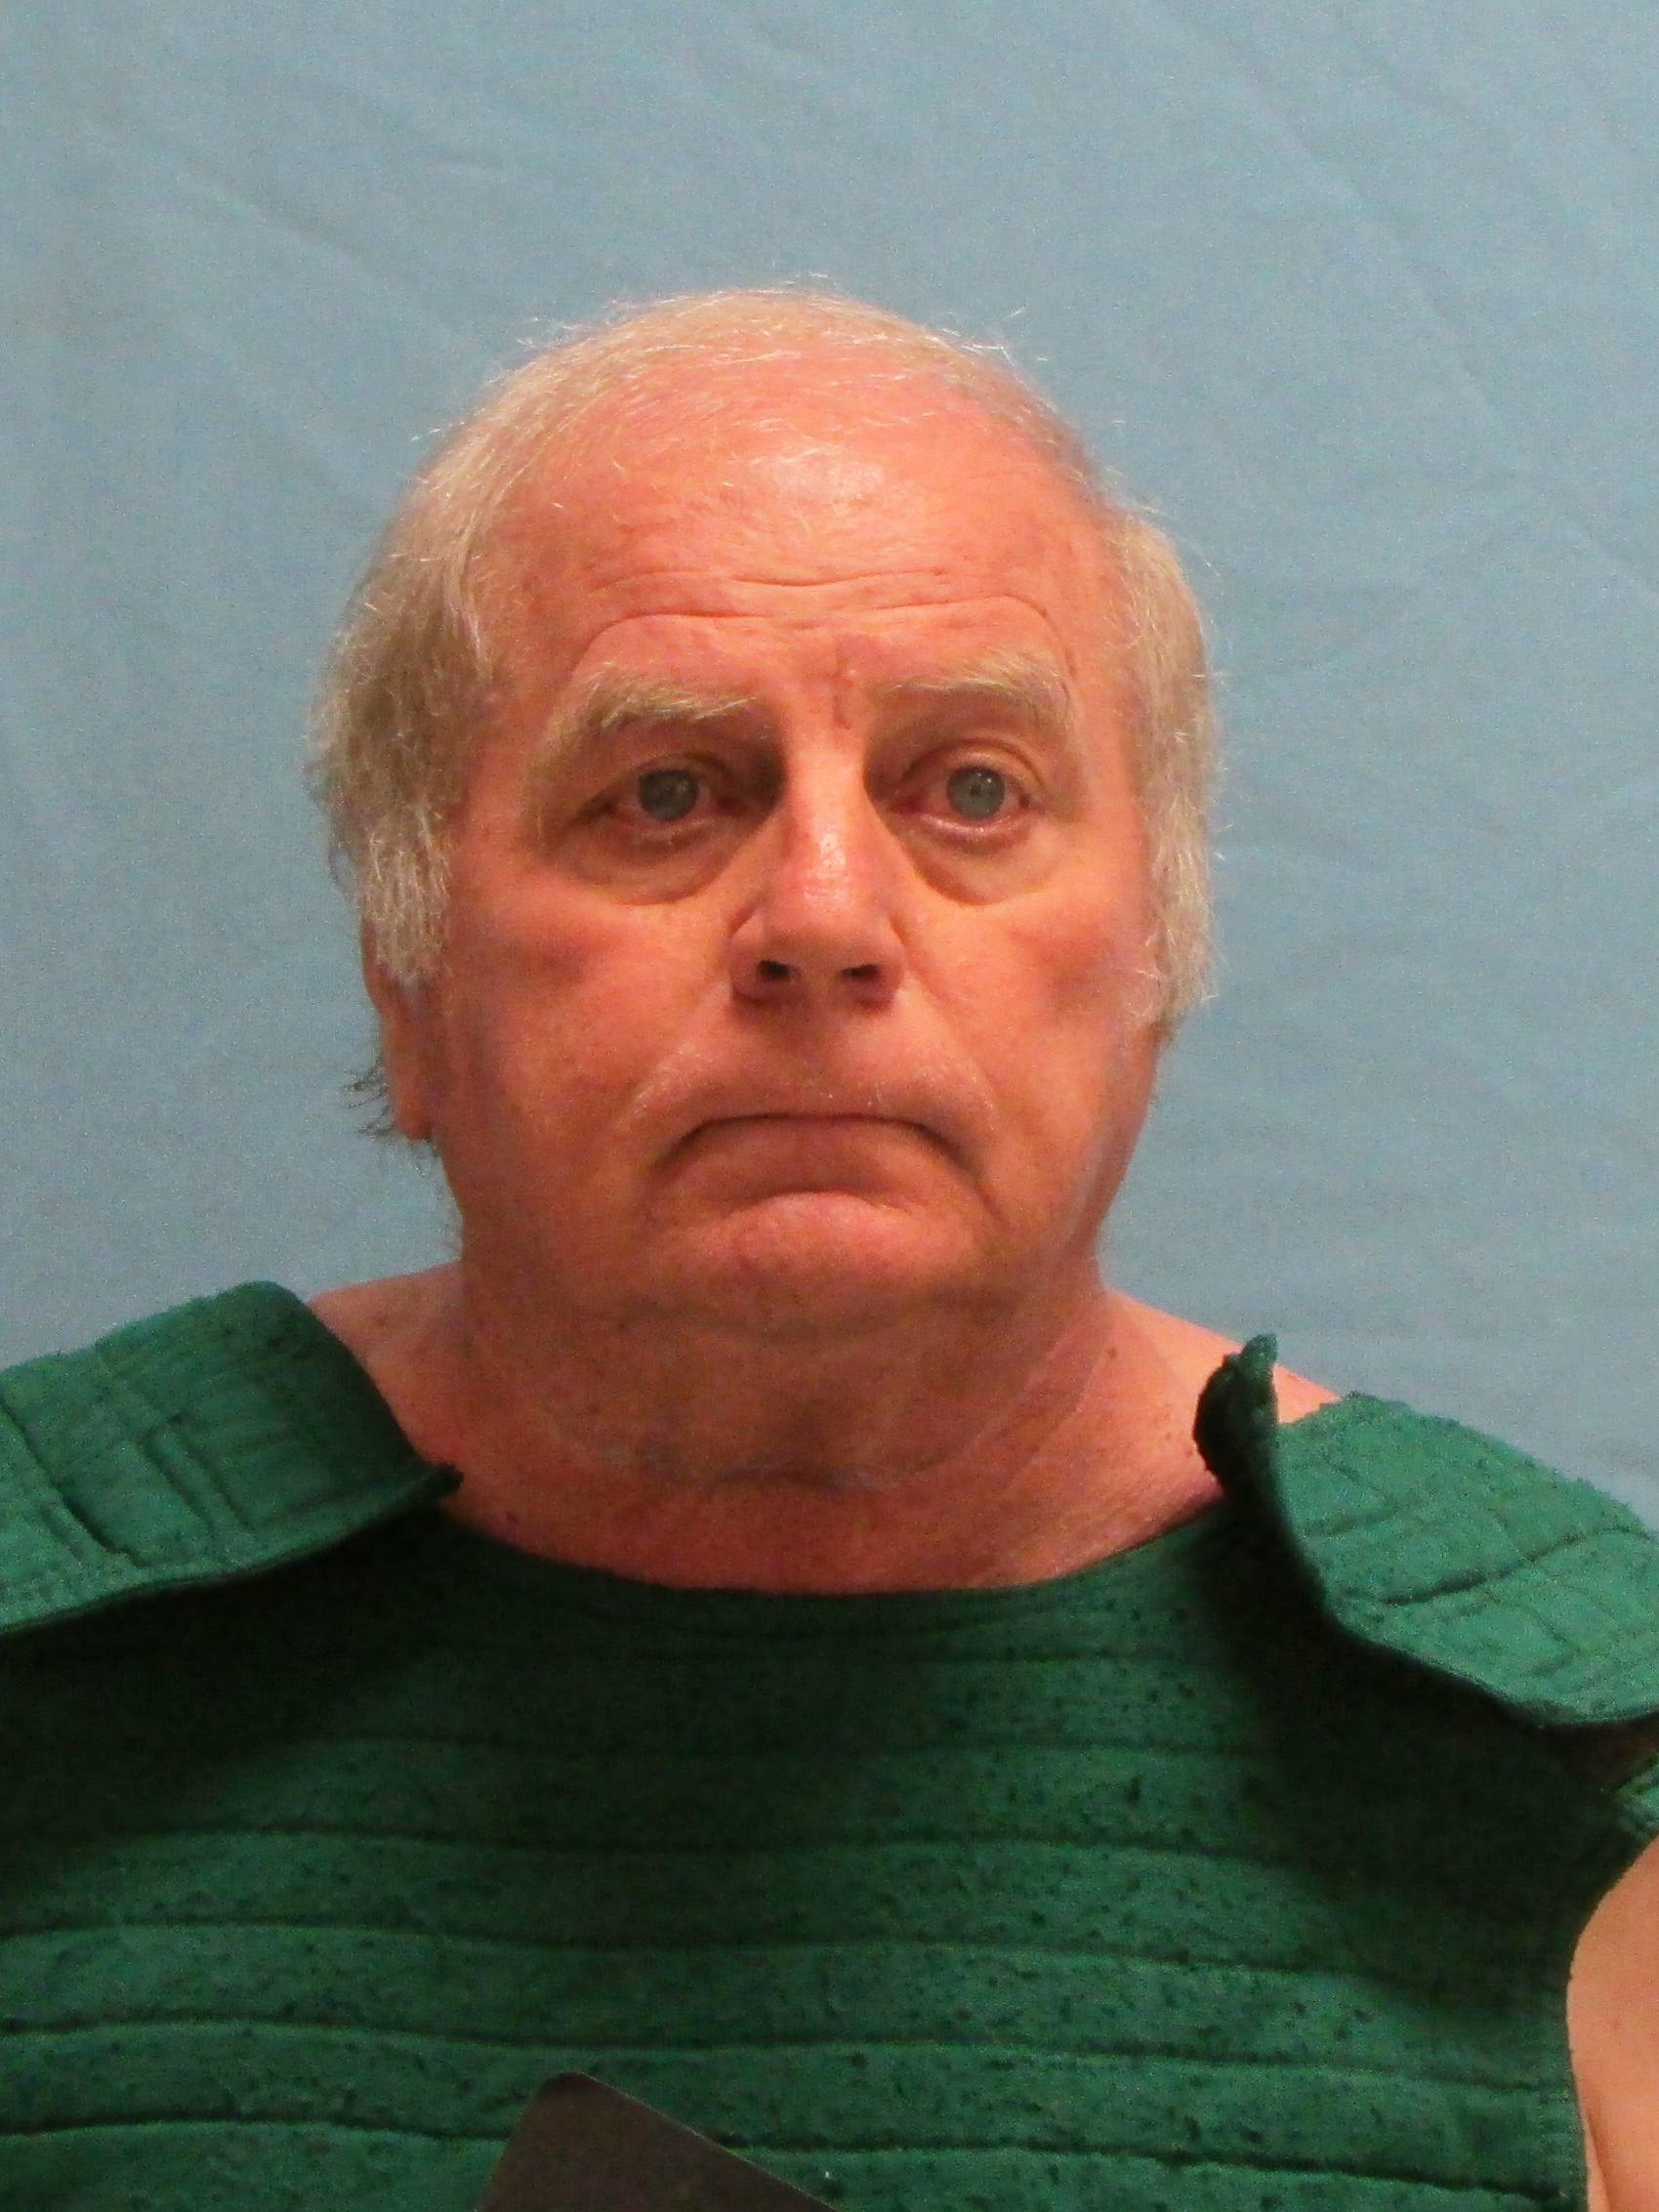 Indictment: Ex-judge exchanged nude photos for tossed cases